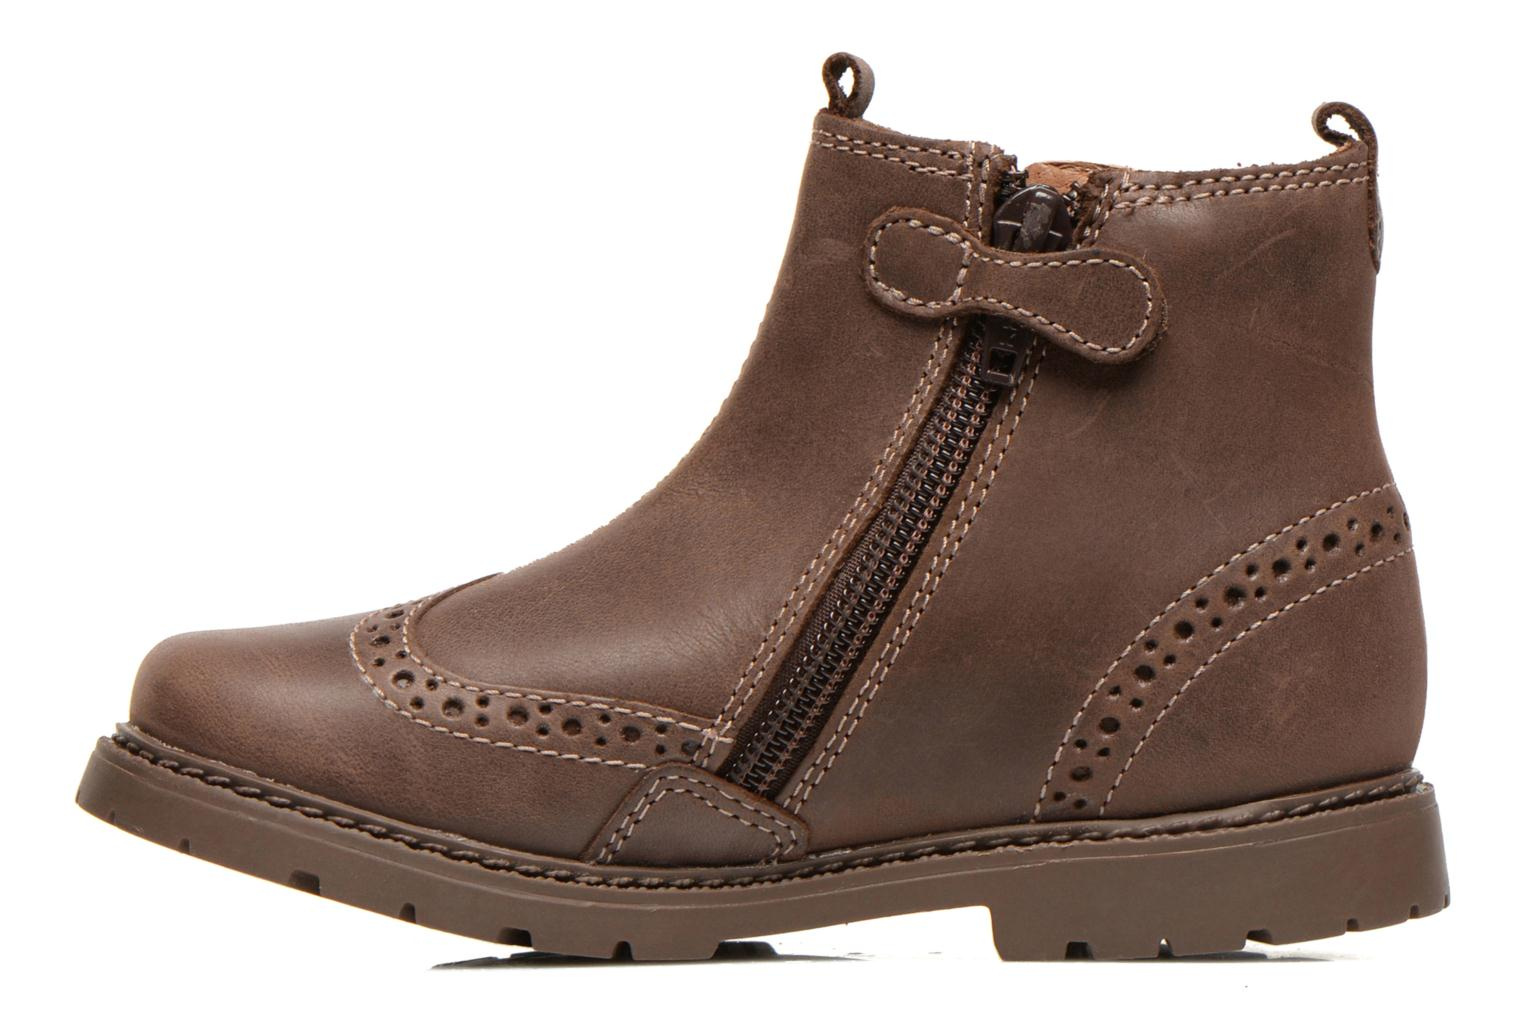 Digby Brown leather